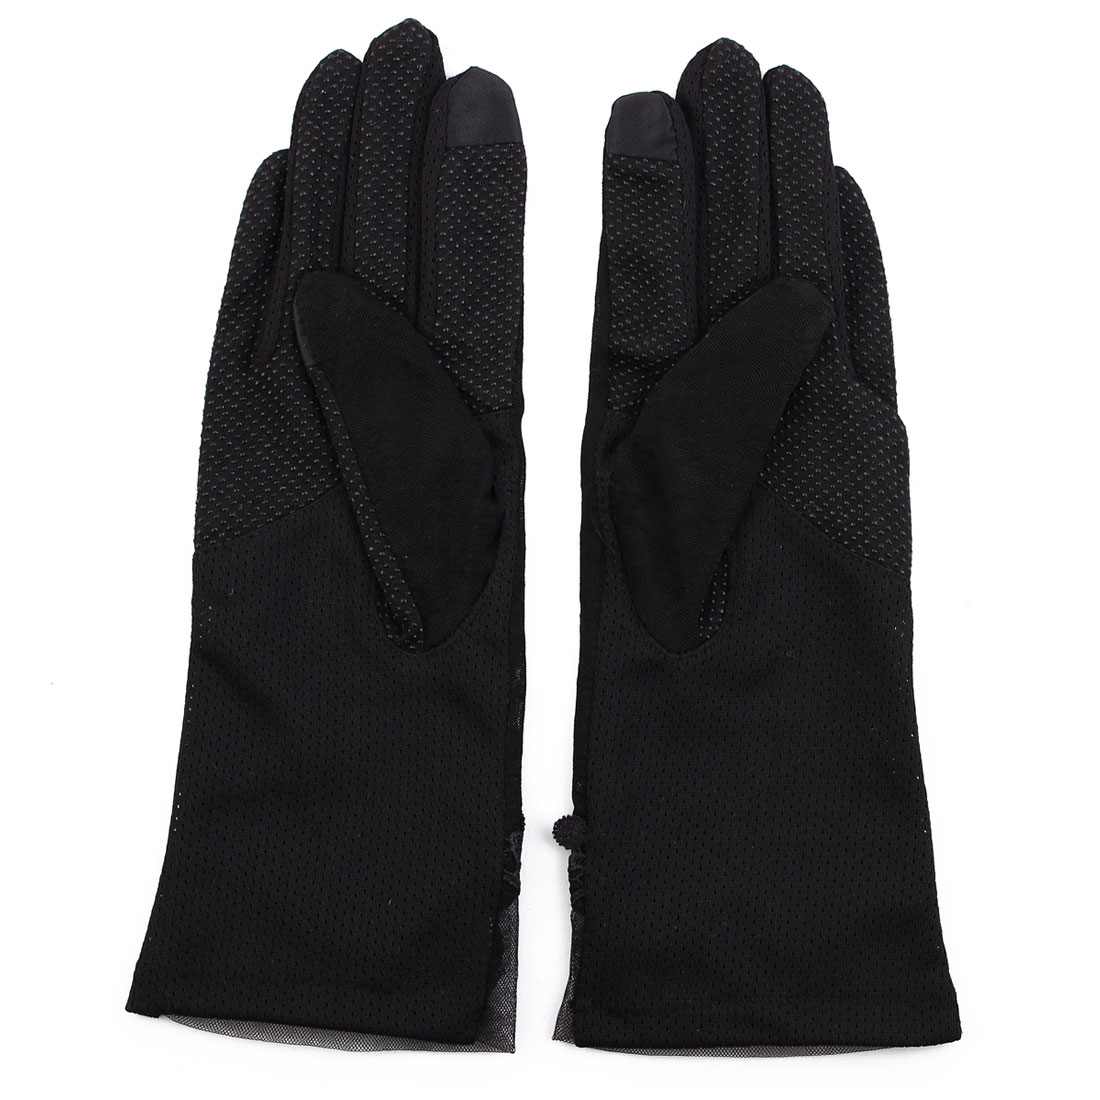 Outdoor Travel Driving Flower Bowknot Decor Full Finger Non-slip Sun Resistant Gloves Black Pair for Women